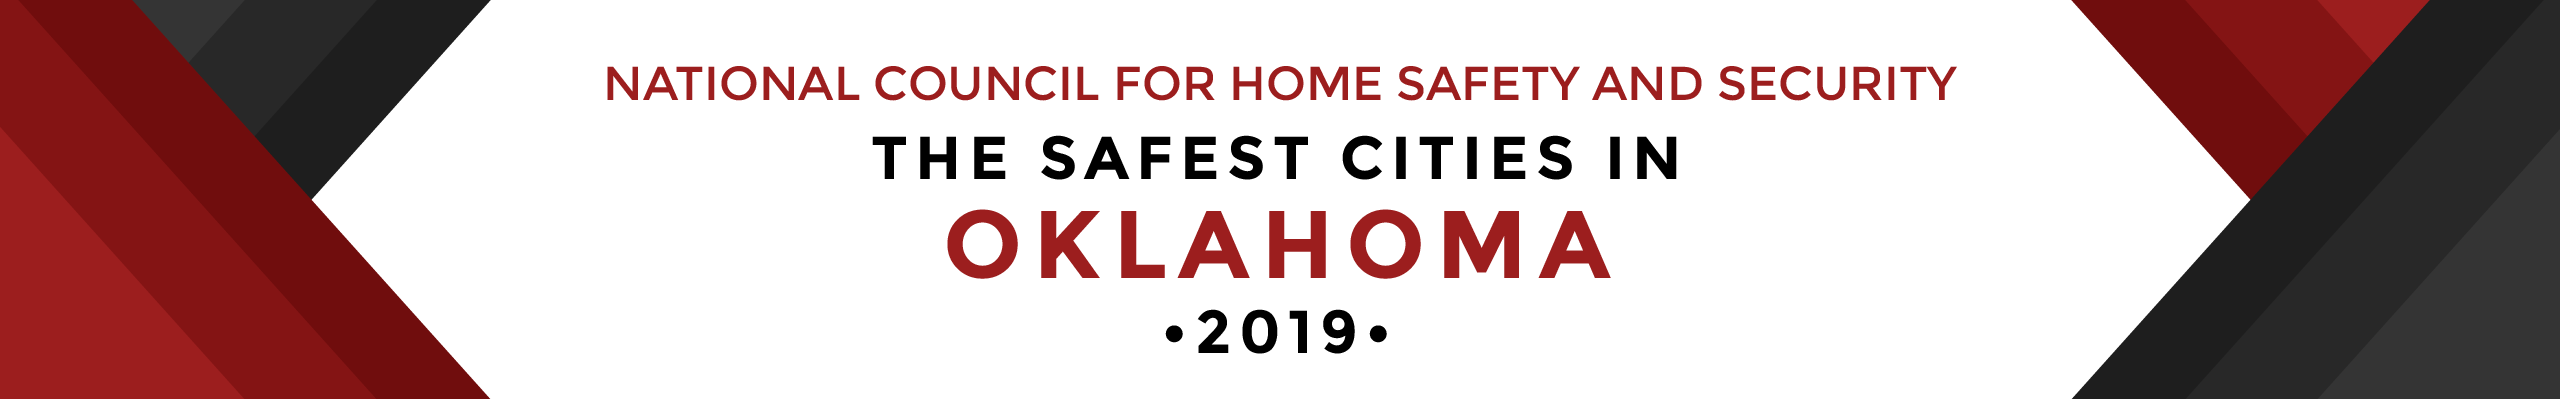 Safest Cities Oklahoma - header